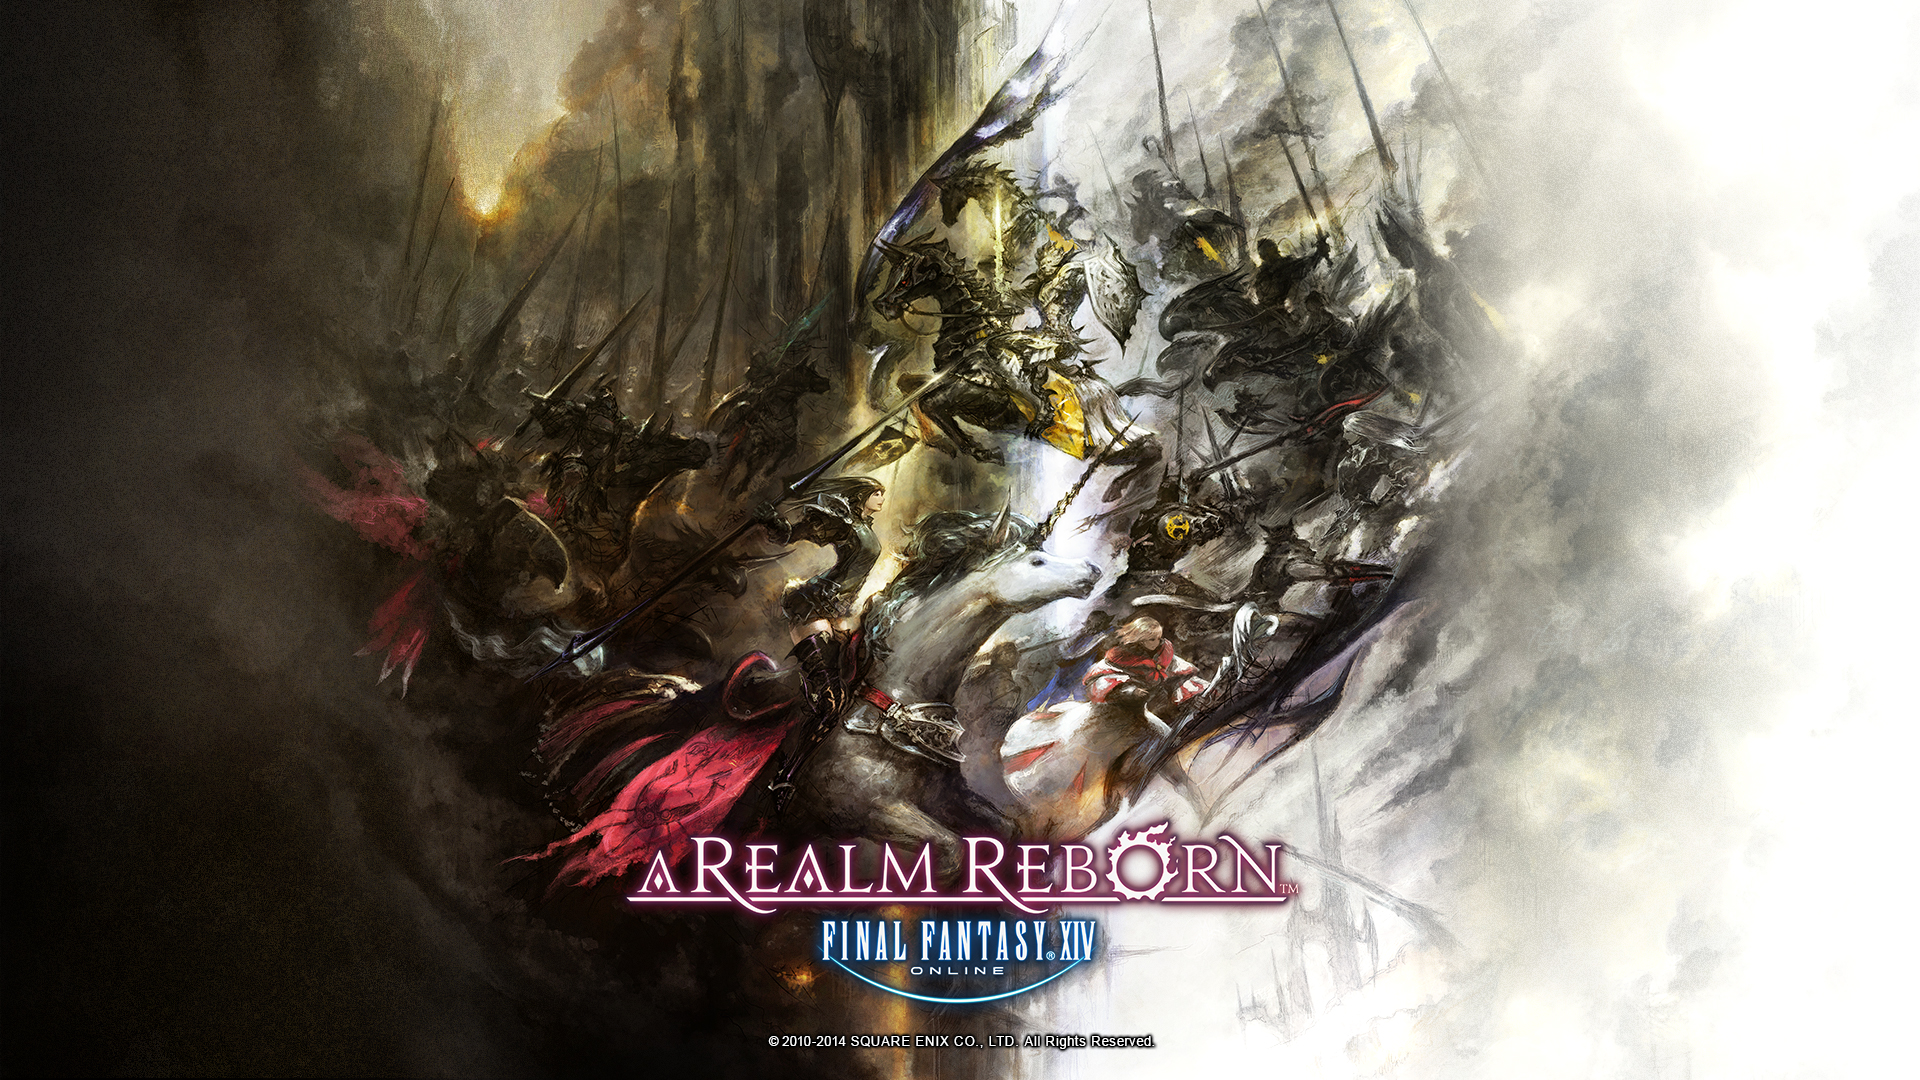 FINAL FANTASY XIV: A Realm Reborn Free Trial Lands on PS4